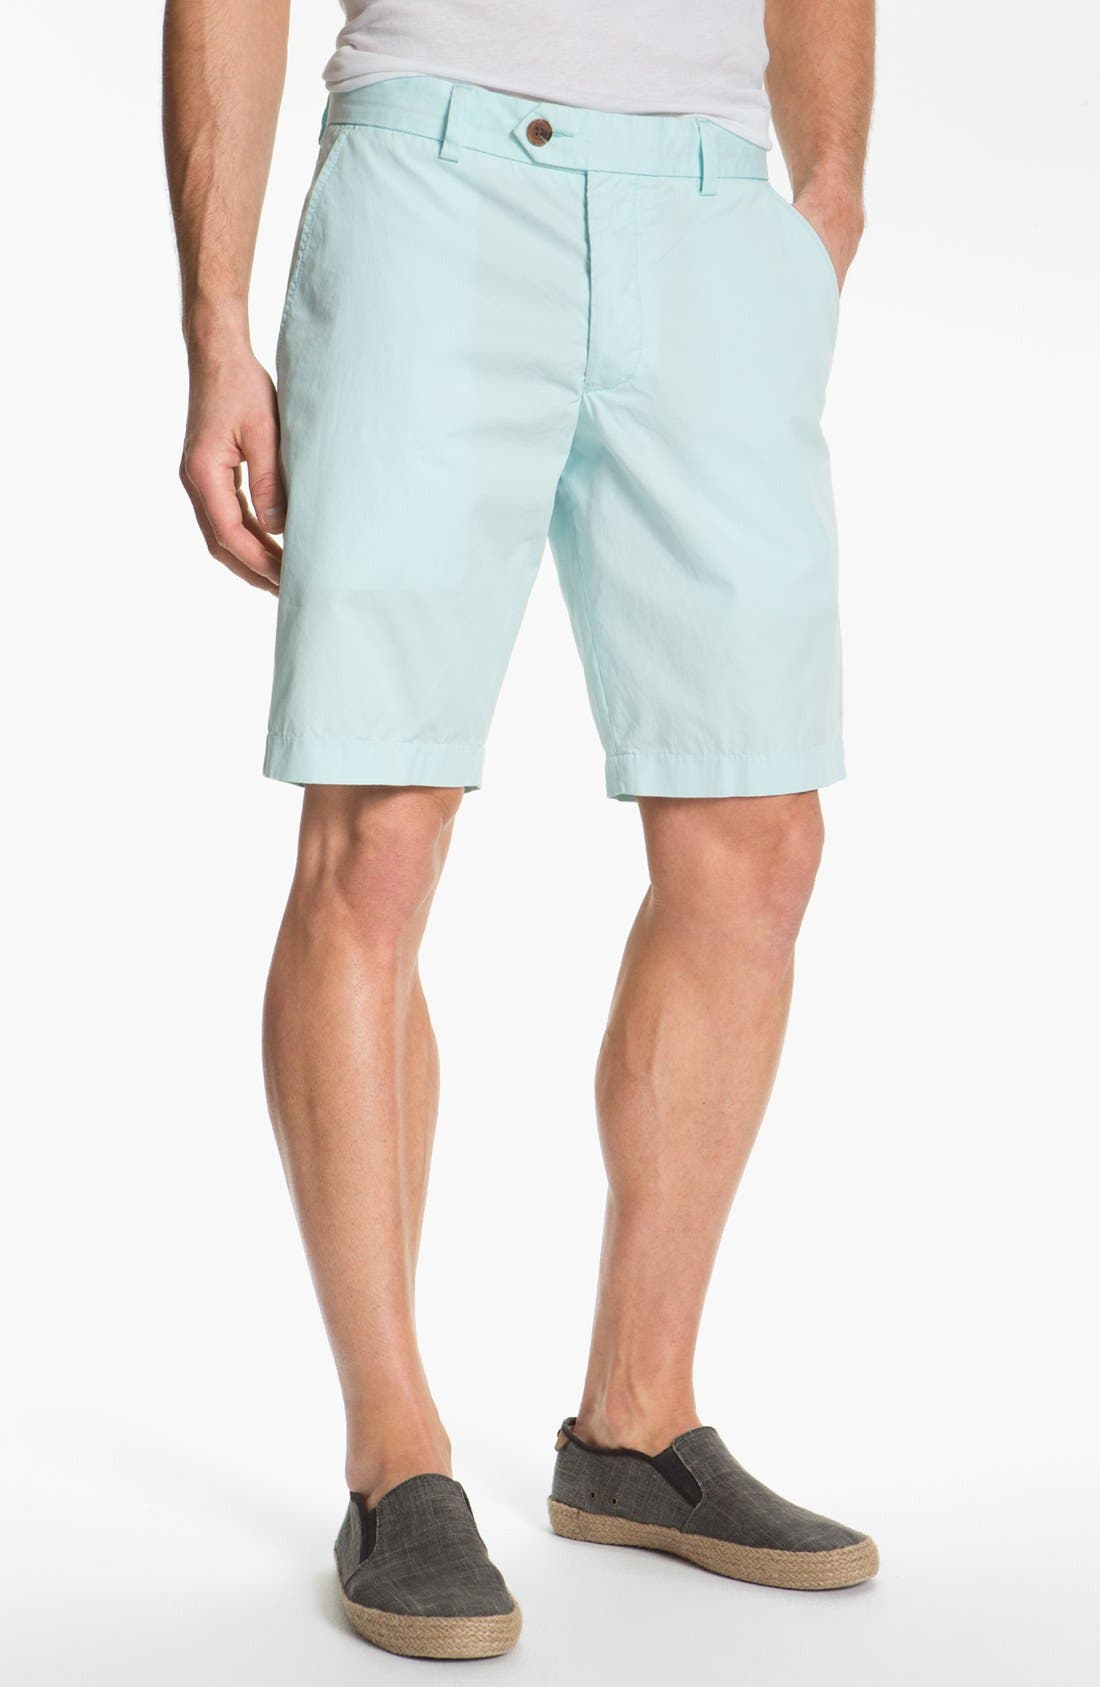 Alternate Image 1 Selected - French Connection Peached Cotton Shorts